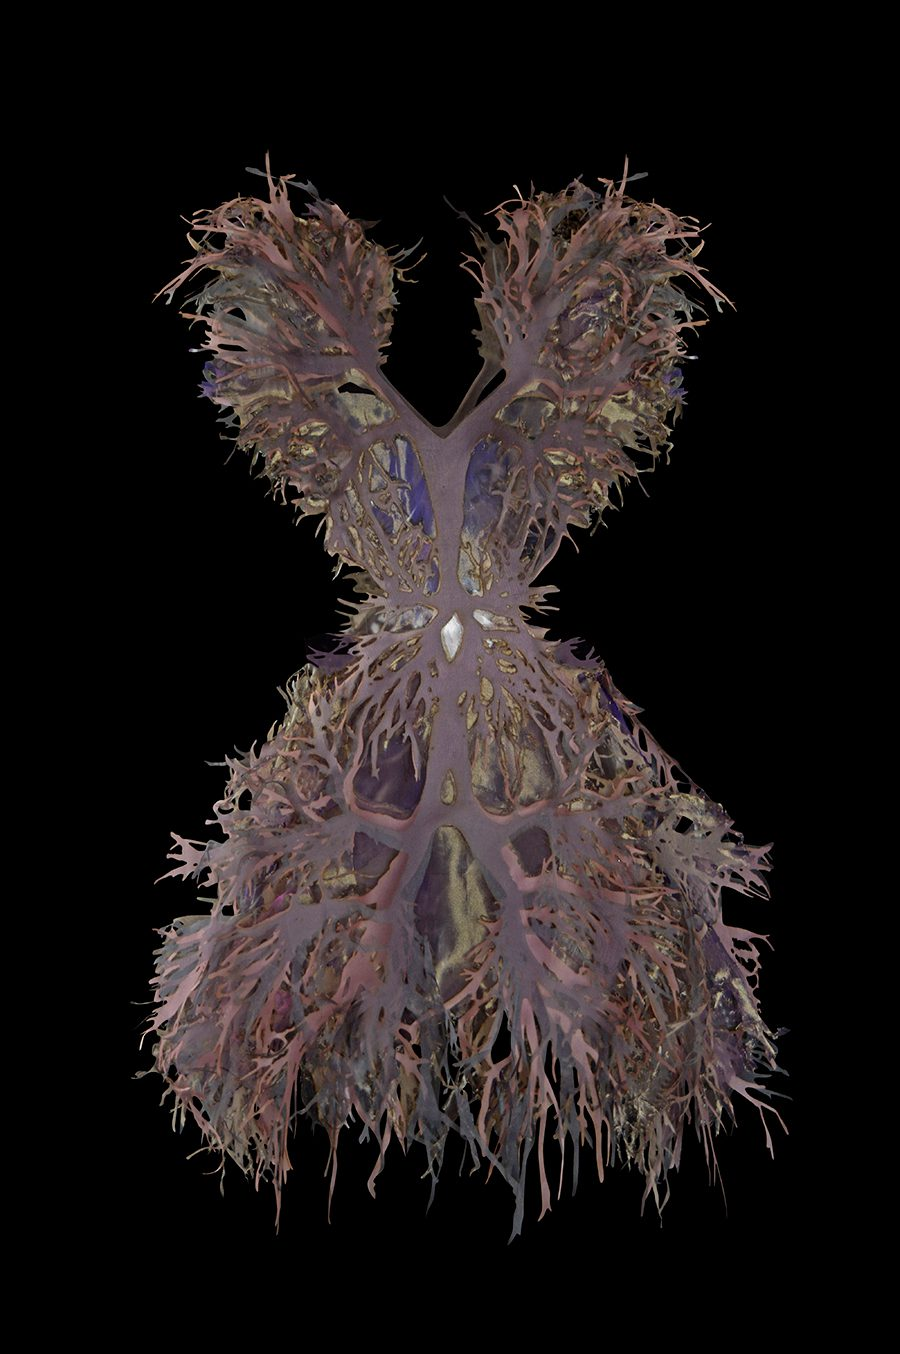 2017-Amy-Karle-Internal-Collection-Second-Chance-dress-based-on-lungs-01